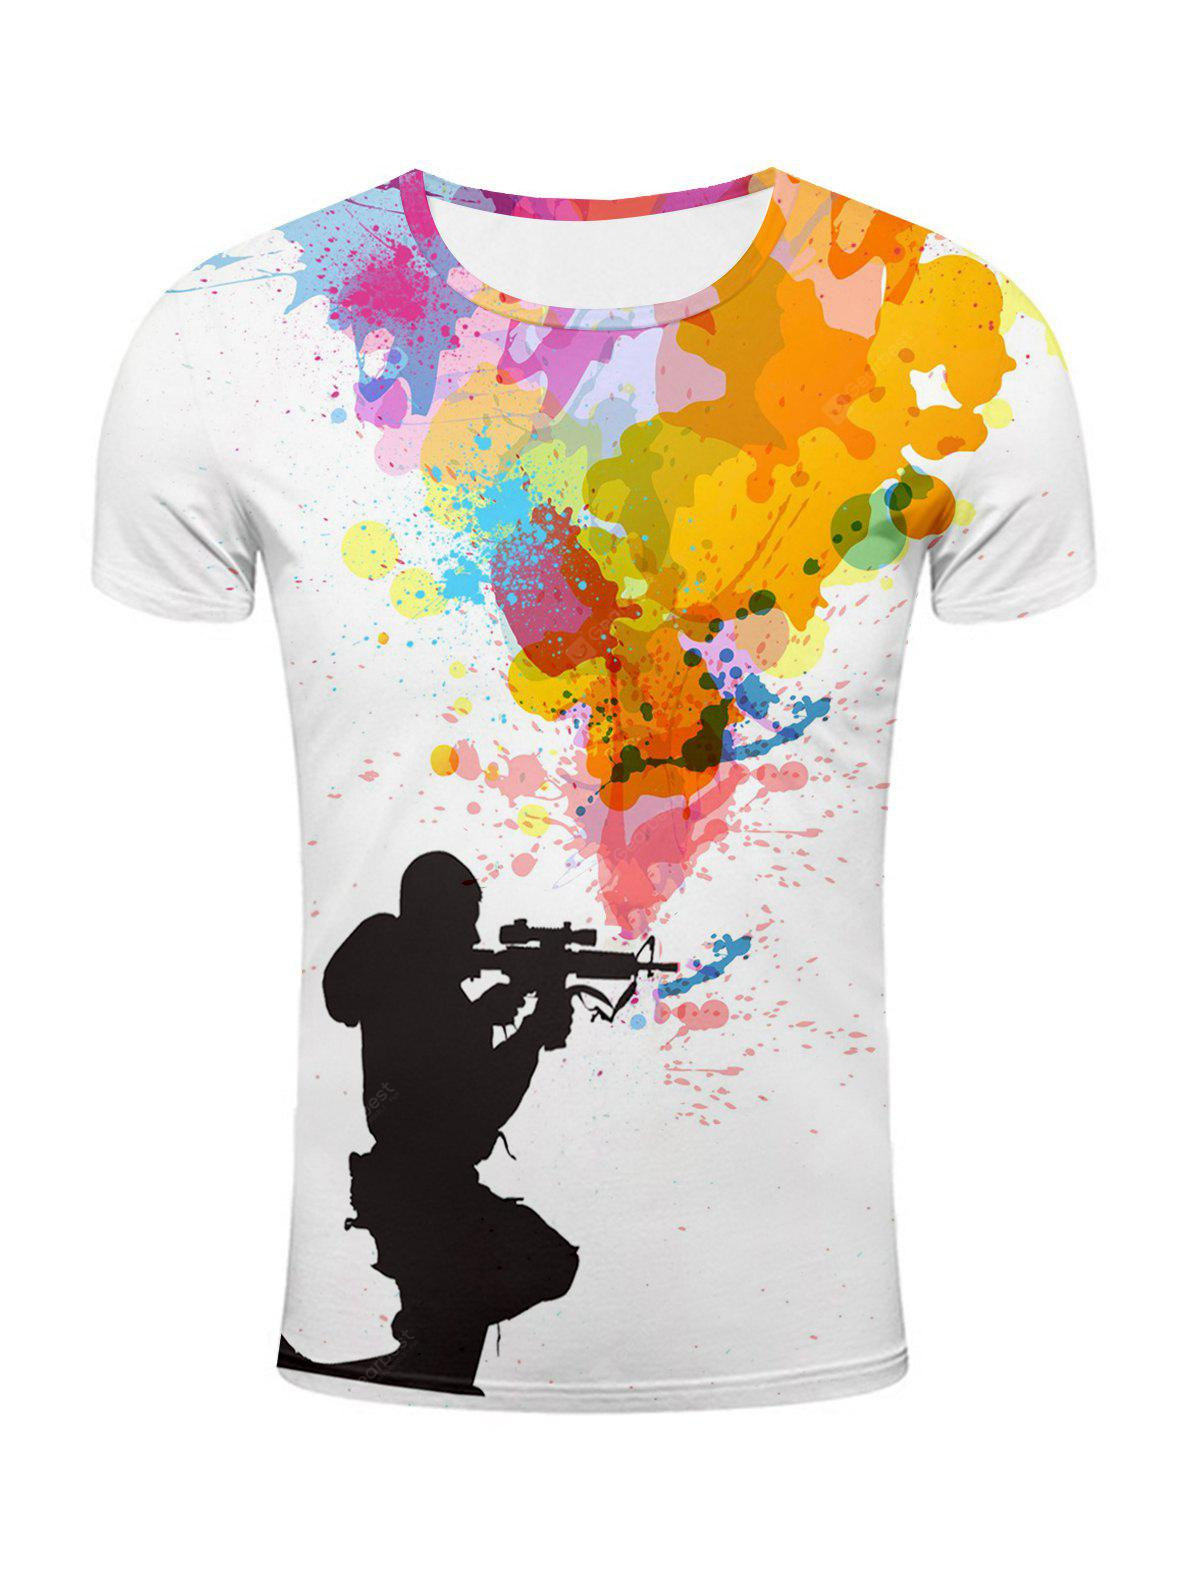 864a88c1 3D Sniper and Colorful Splatter Paint Print T-Shirt | Gearbest